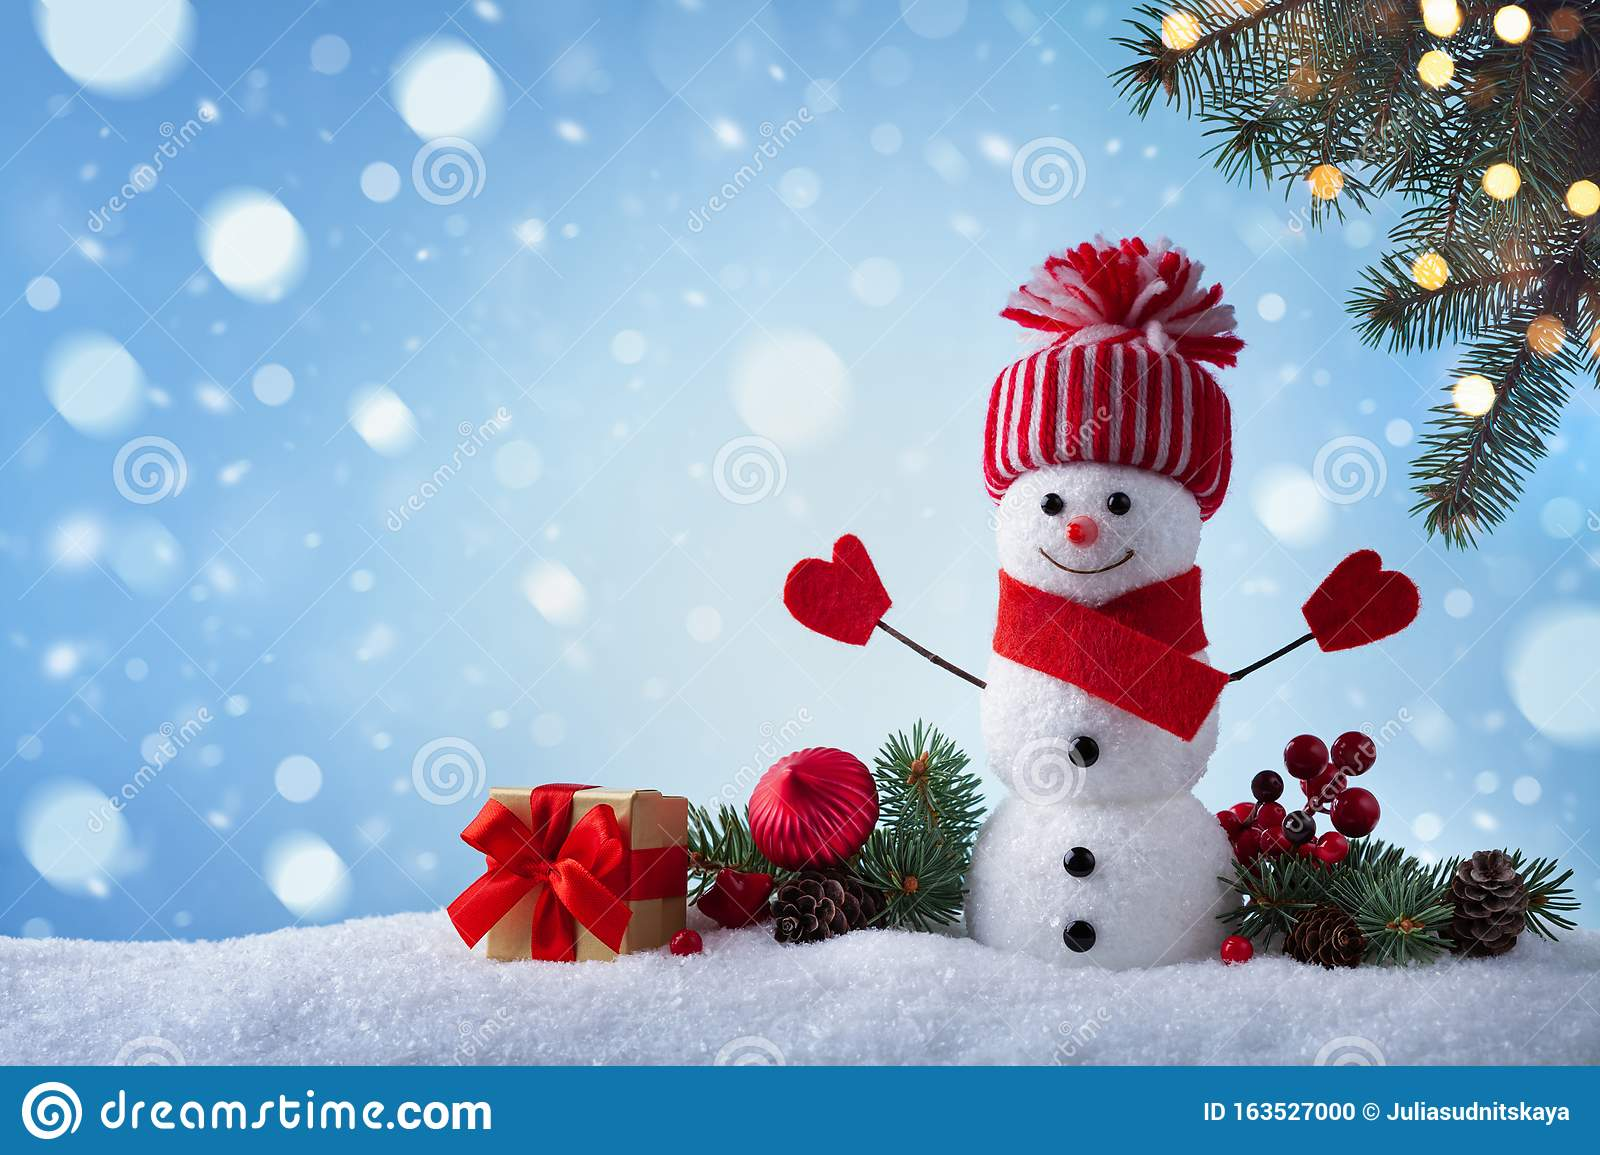 Christmas greeting card with funny snowman, gift box and fir tree branches in winter scenery. Snowy background